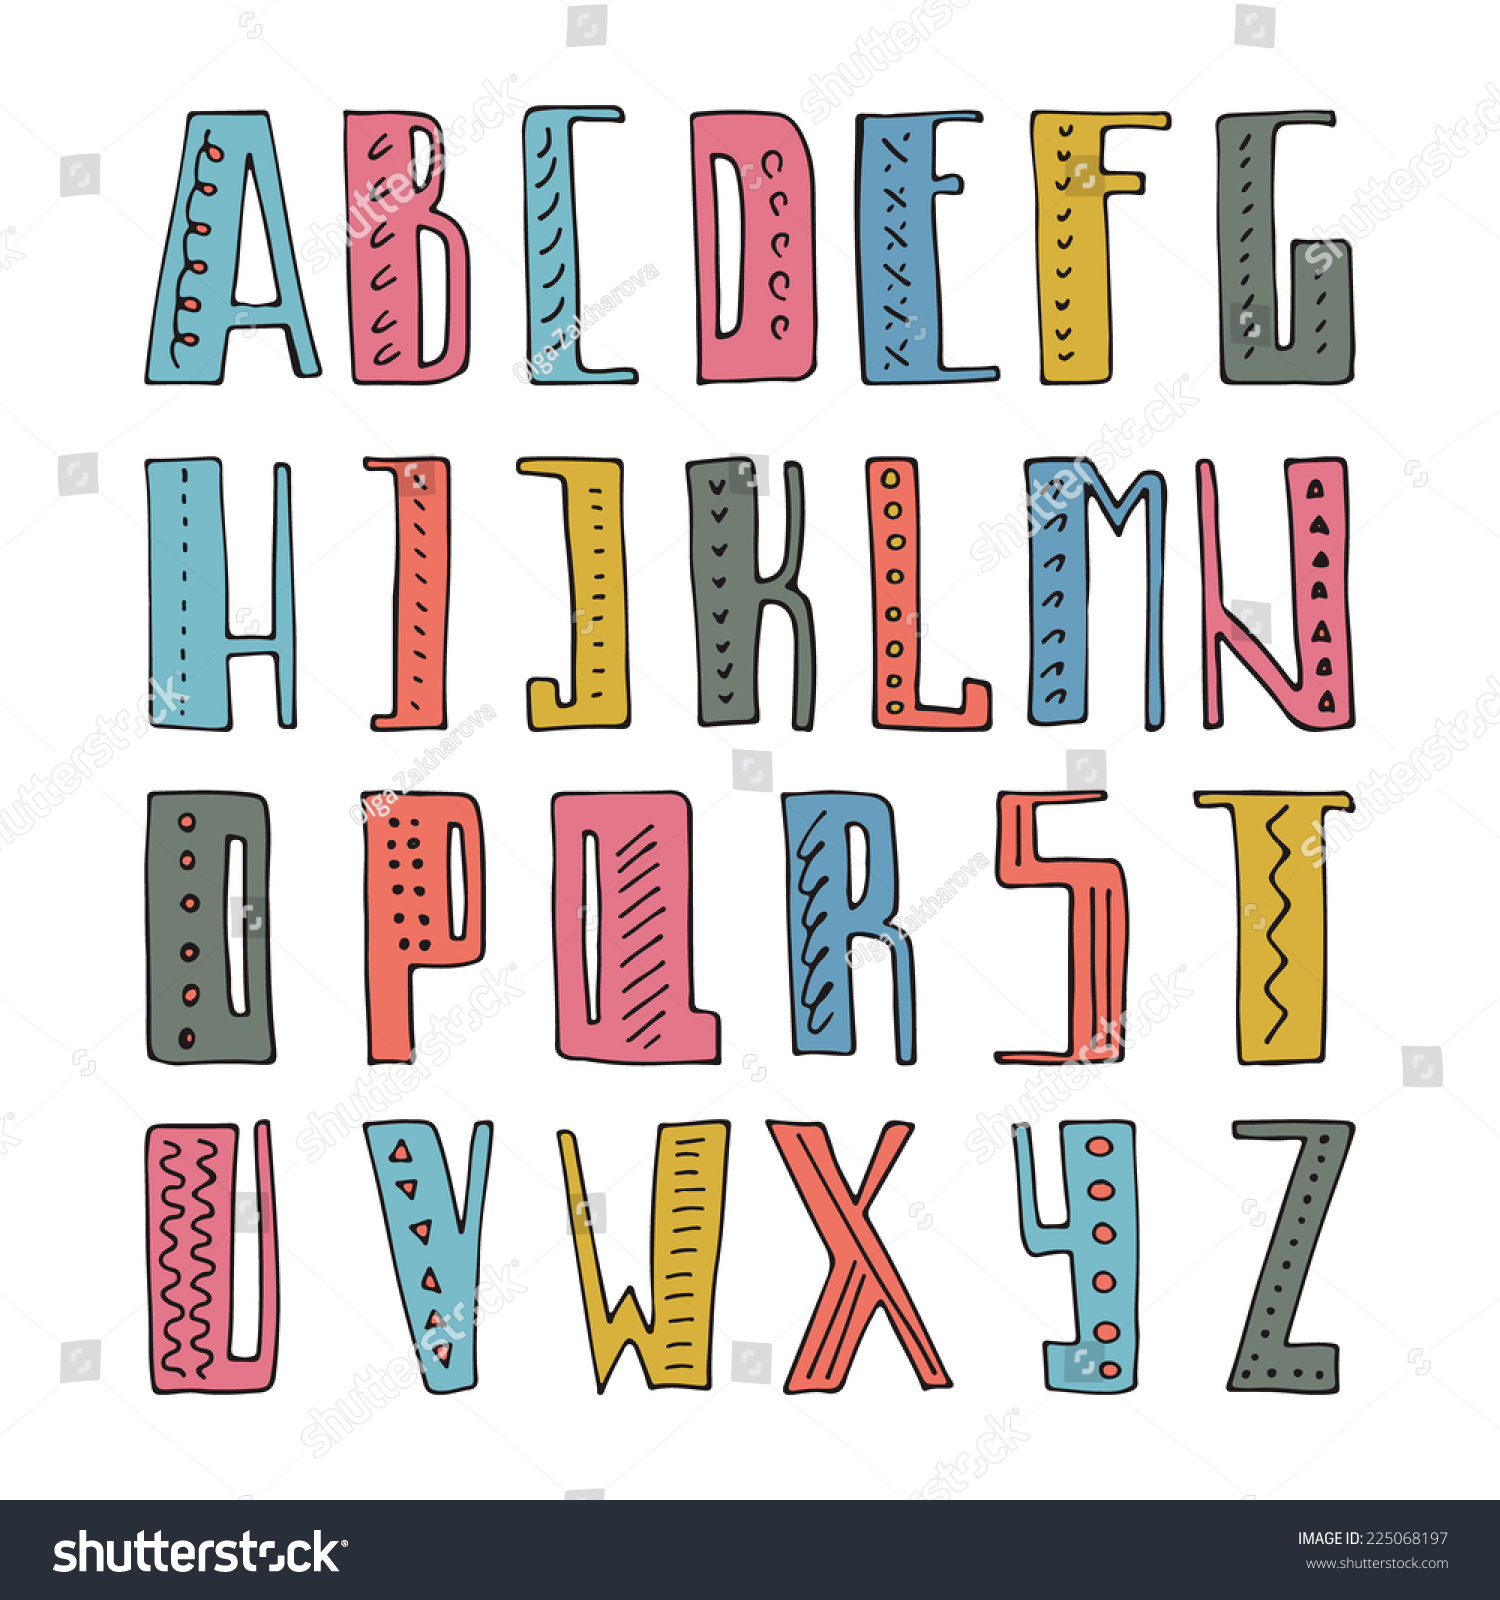 Easy Hand Mades Stock Vector Cute Hand Drawn Alphabet Made In